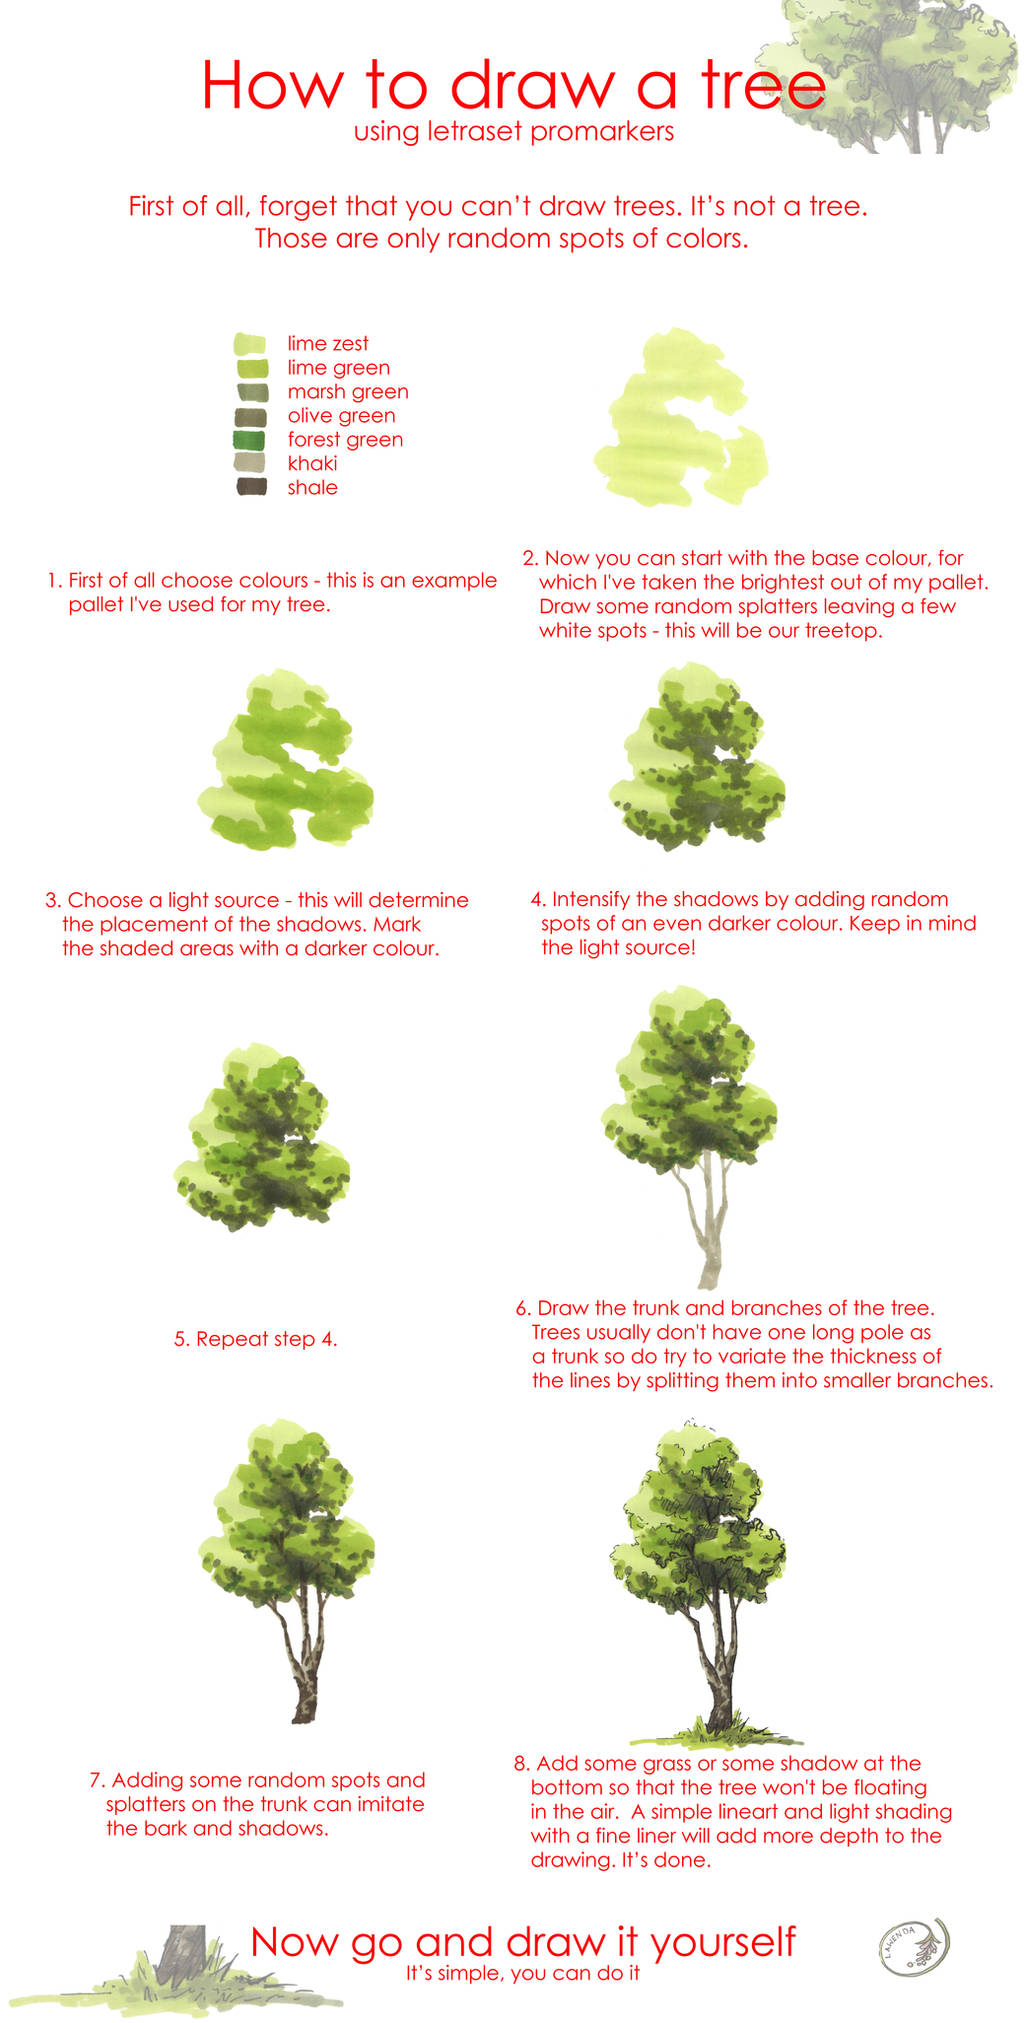 Tree drawing tutorial by Morpho-Deidamia